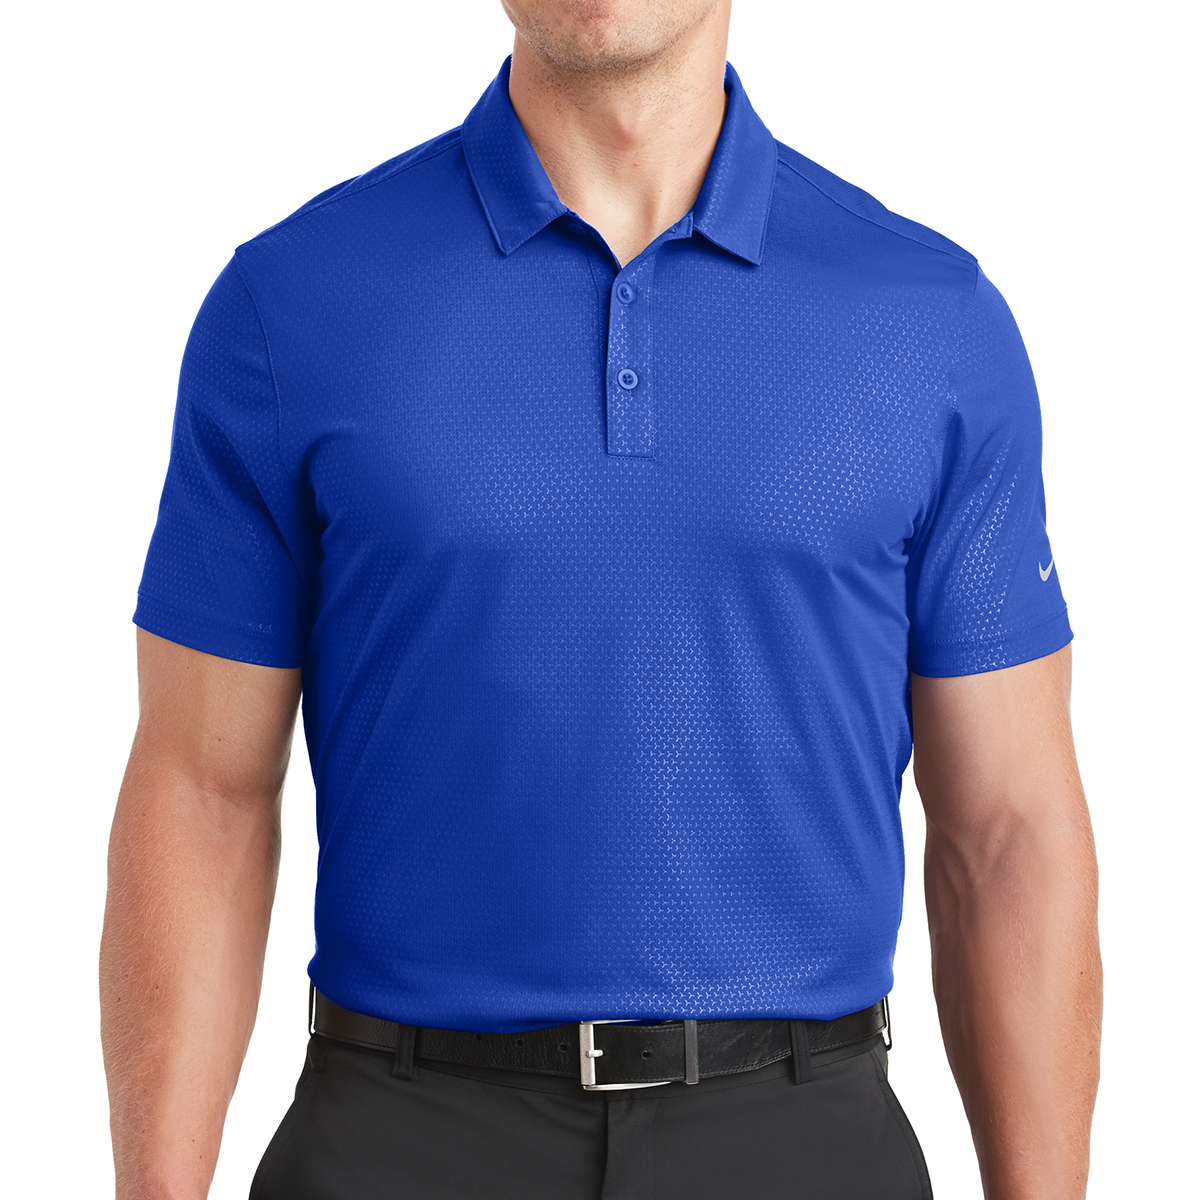 39219599 838964 Nike Dri-FIT Embossed Tri-Blade Polo - Hit Promotional Products